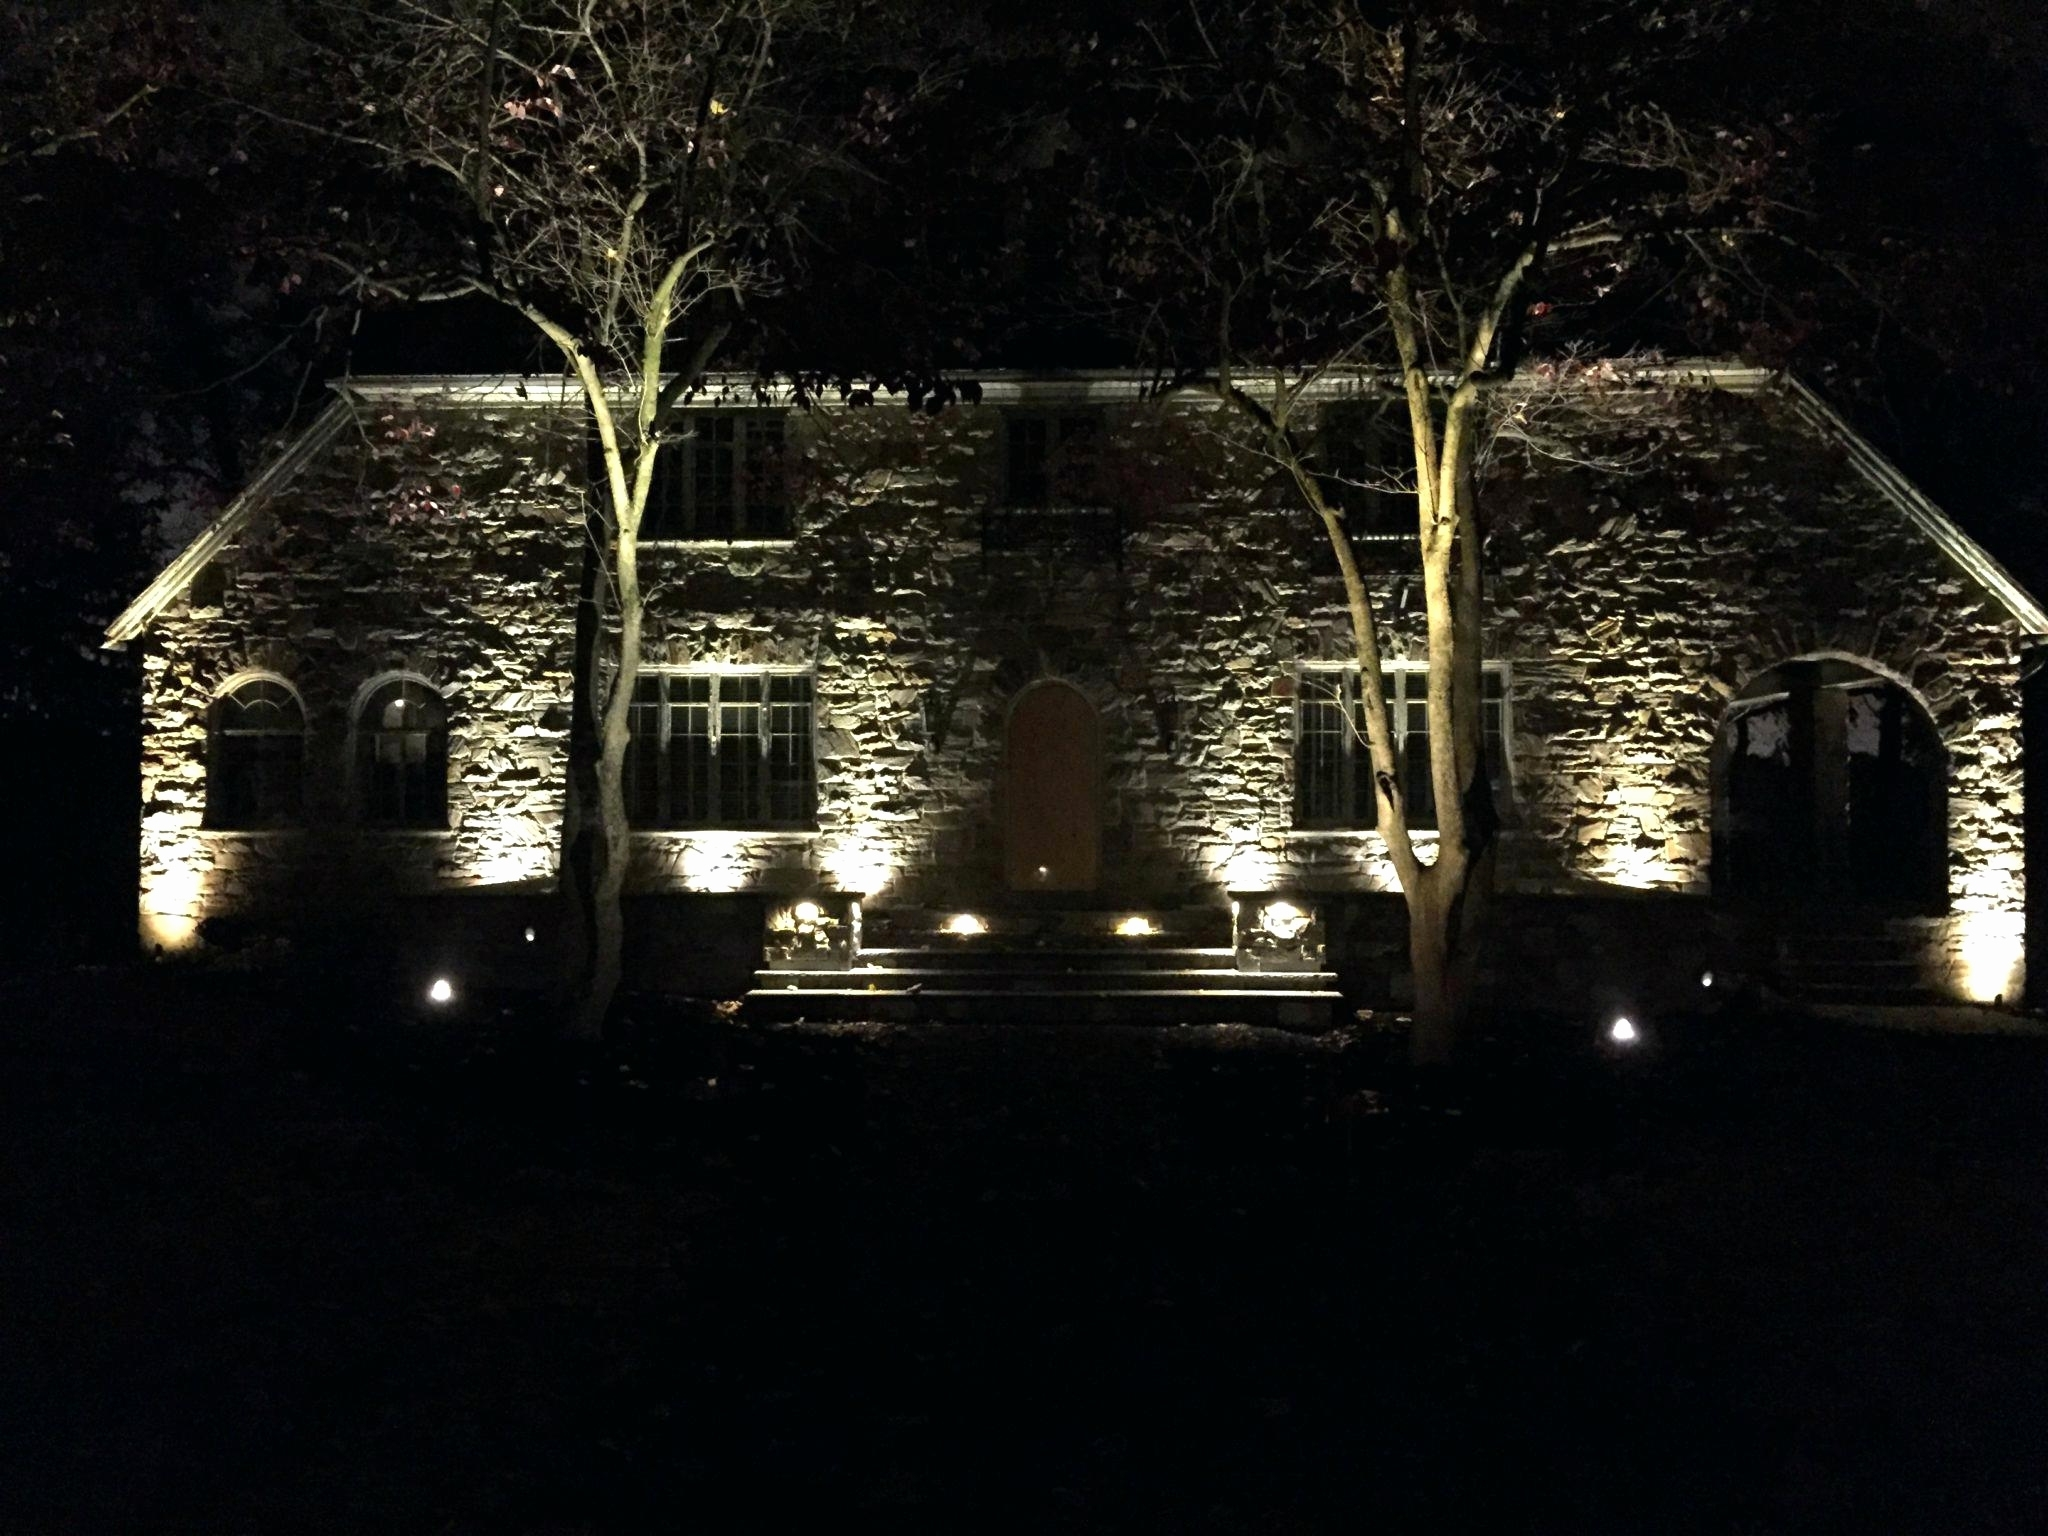 Current Electric Outdoor Lighting Garden Pertaining To Best Of Electric Outdoor Lighting Garden – Home Inspiration (View 5 of 20)